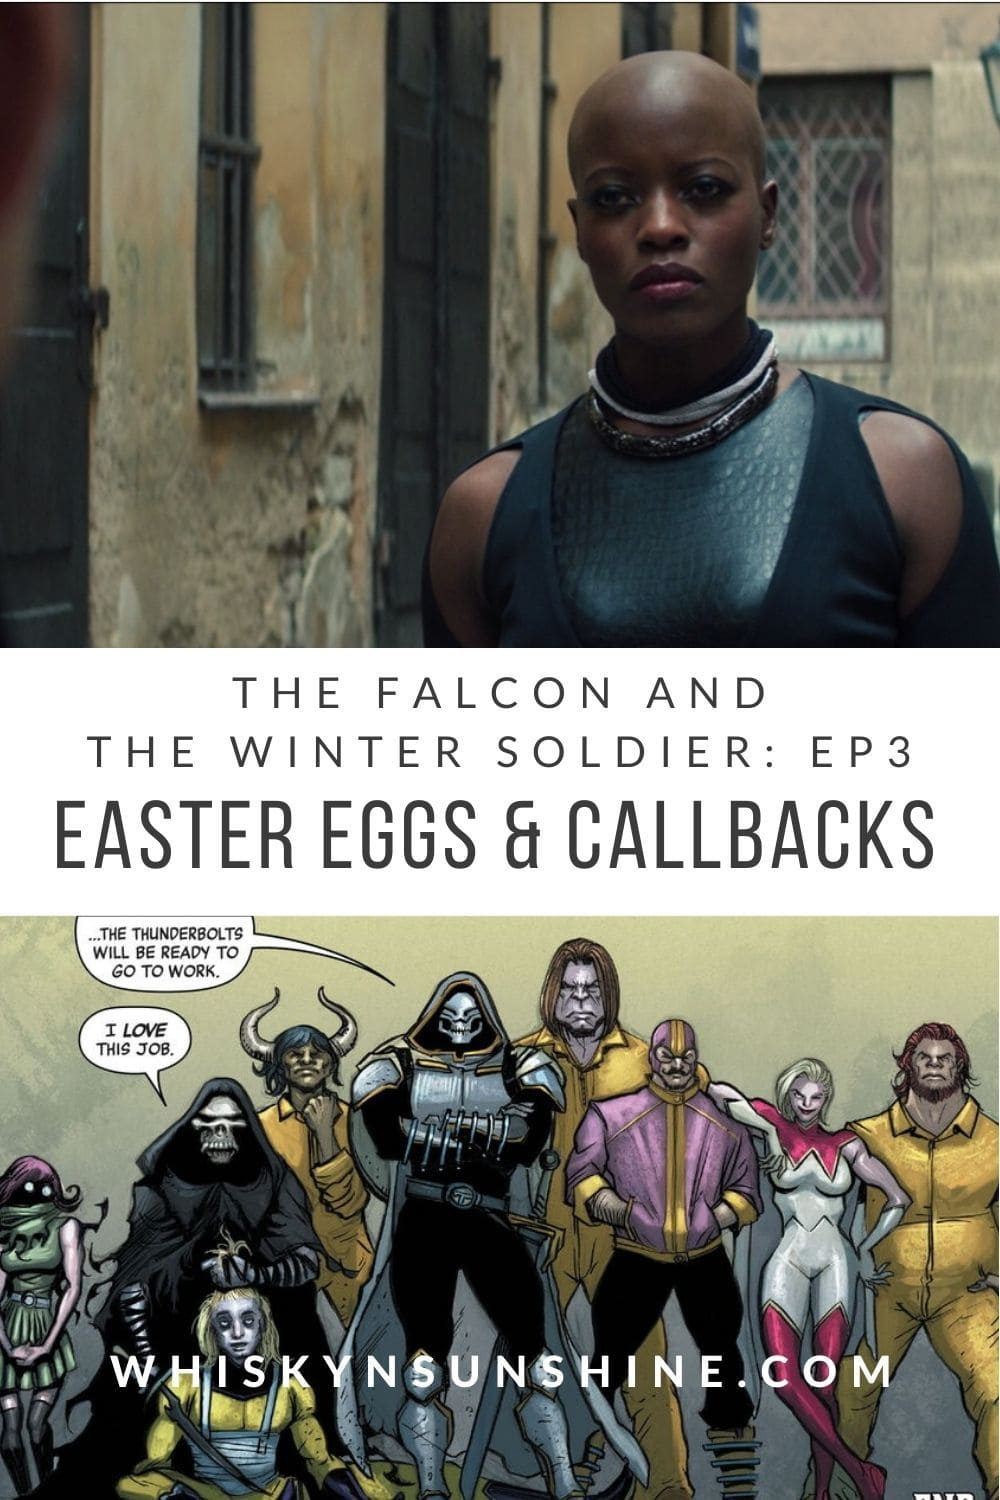 falcon and winter soldier ep 3 easter eggs and callbacksfalcon and winter soldier ep 3 easter eggs and callbacks